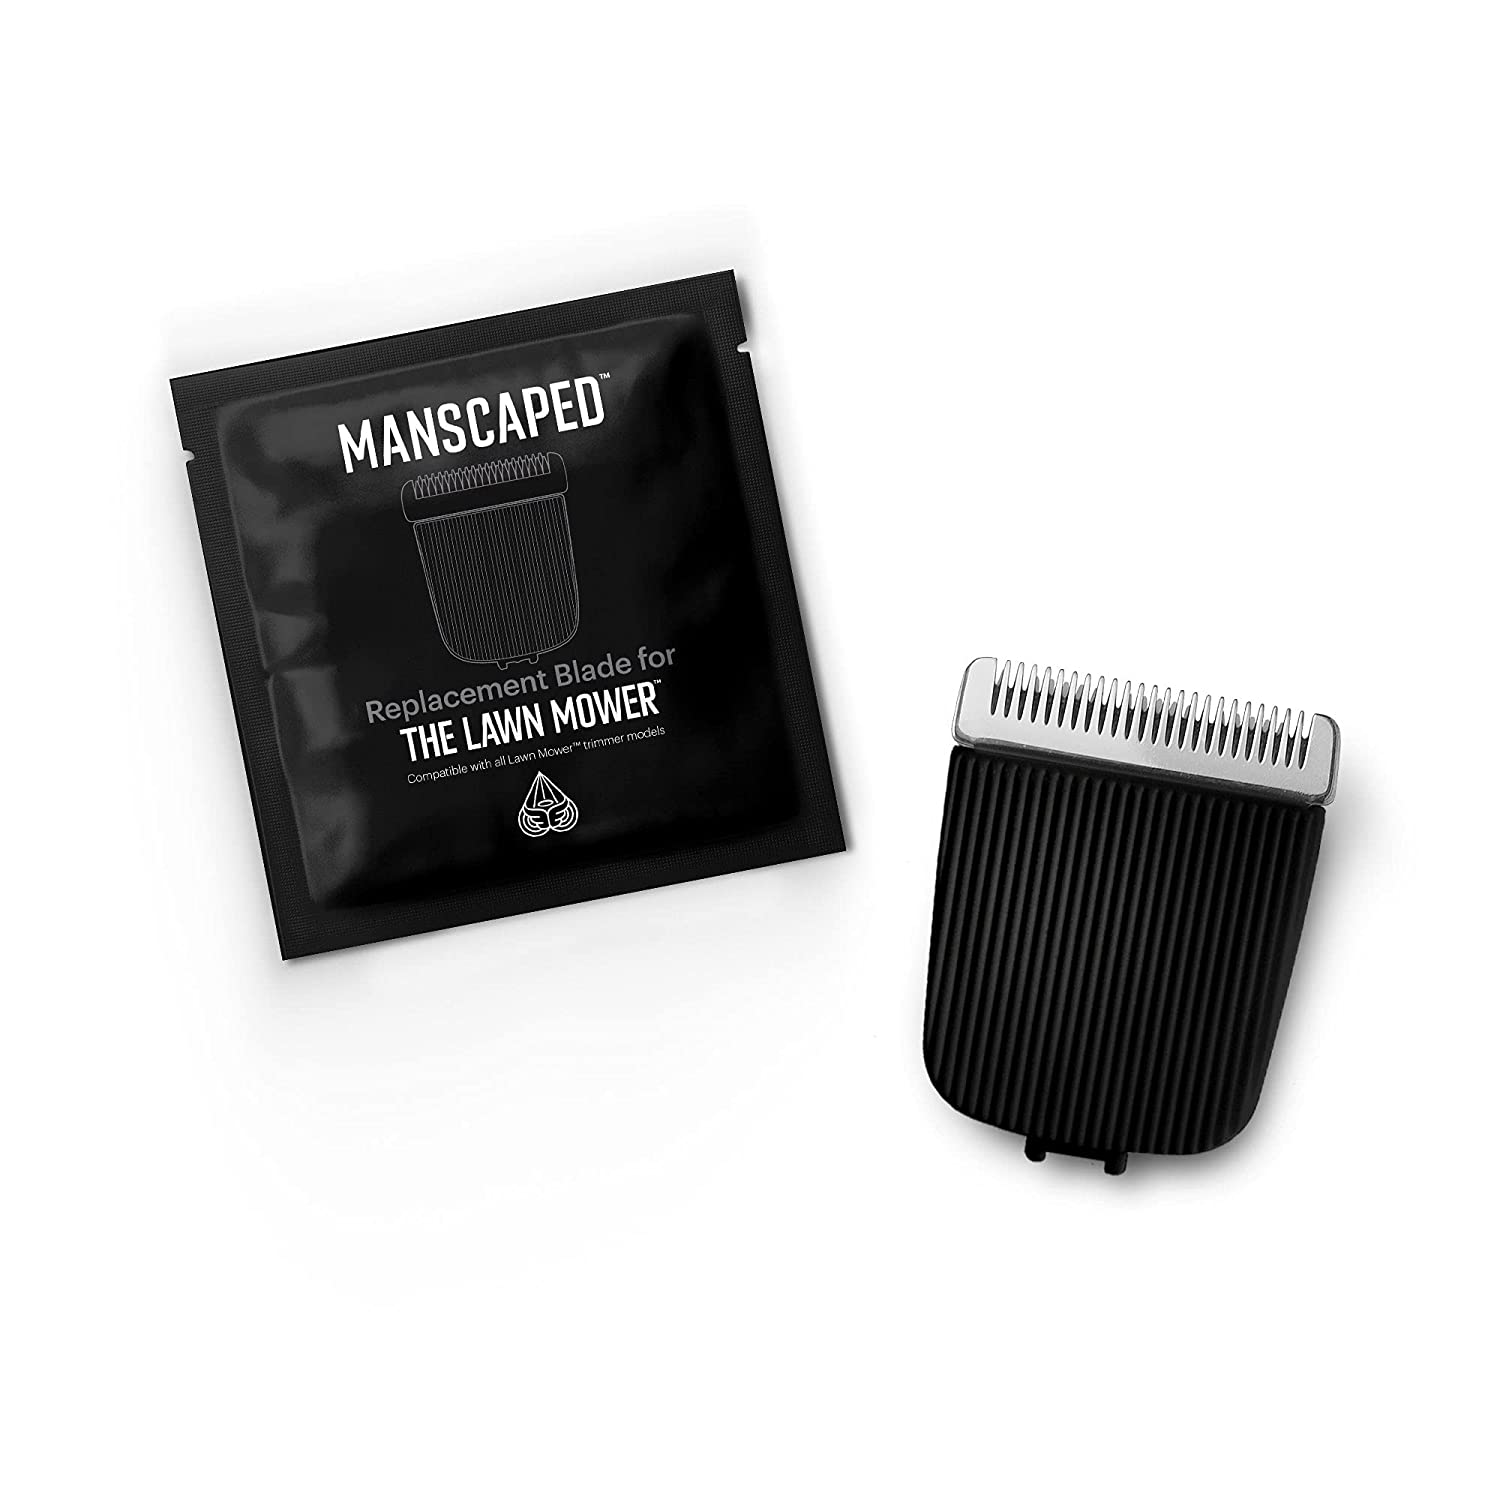 MANSCAPED Super beauty product restock quality top The Lawn Mower Electric Ceramic At the price Hair Groin Trimmer Bla